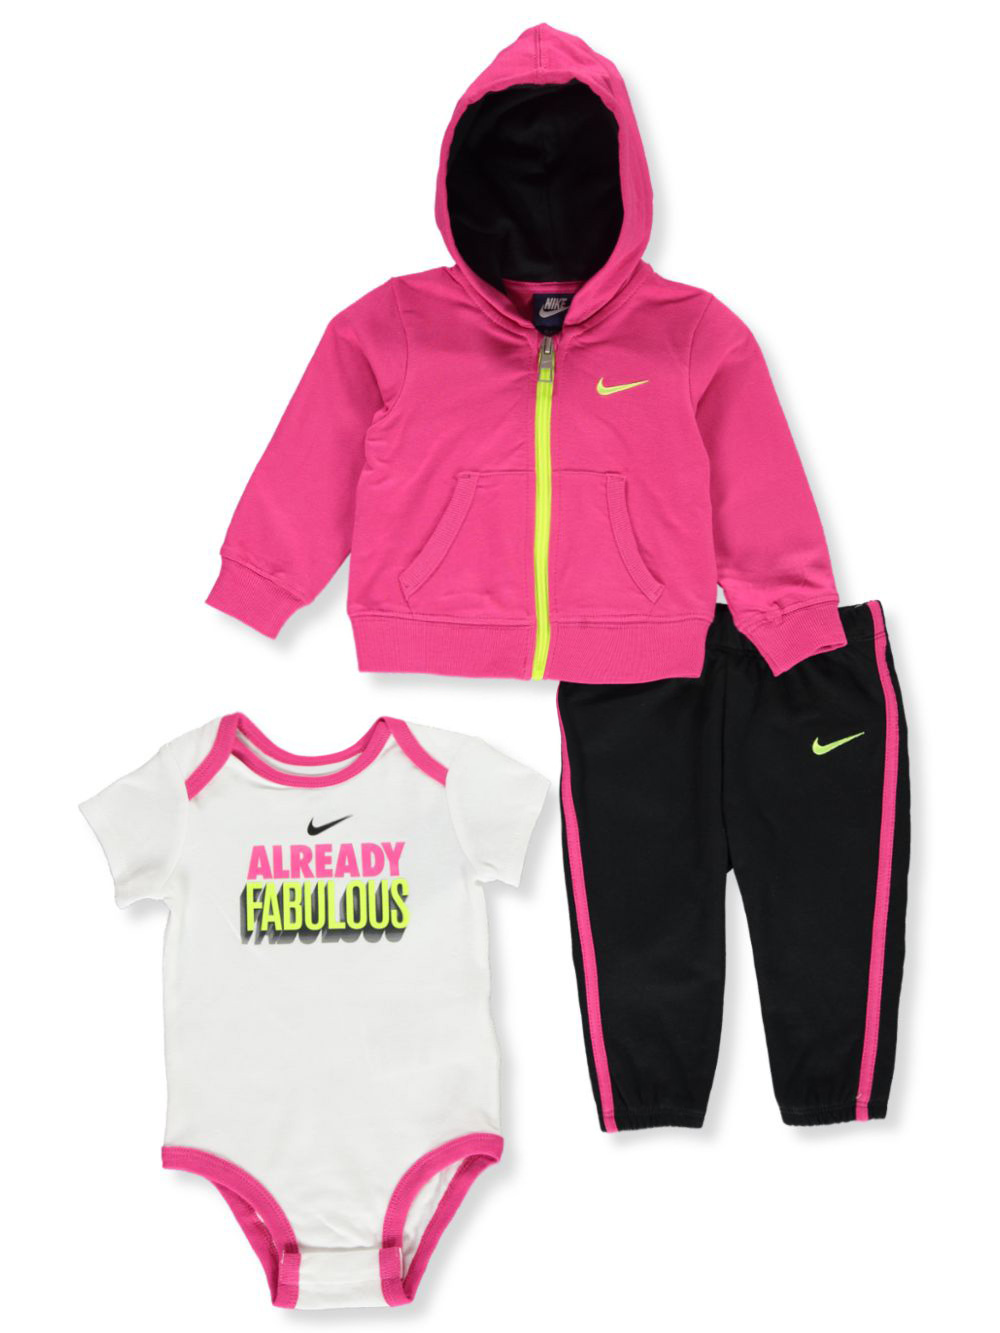 Girls 3-Piece Joggers Set Outfit